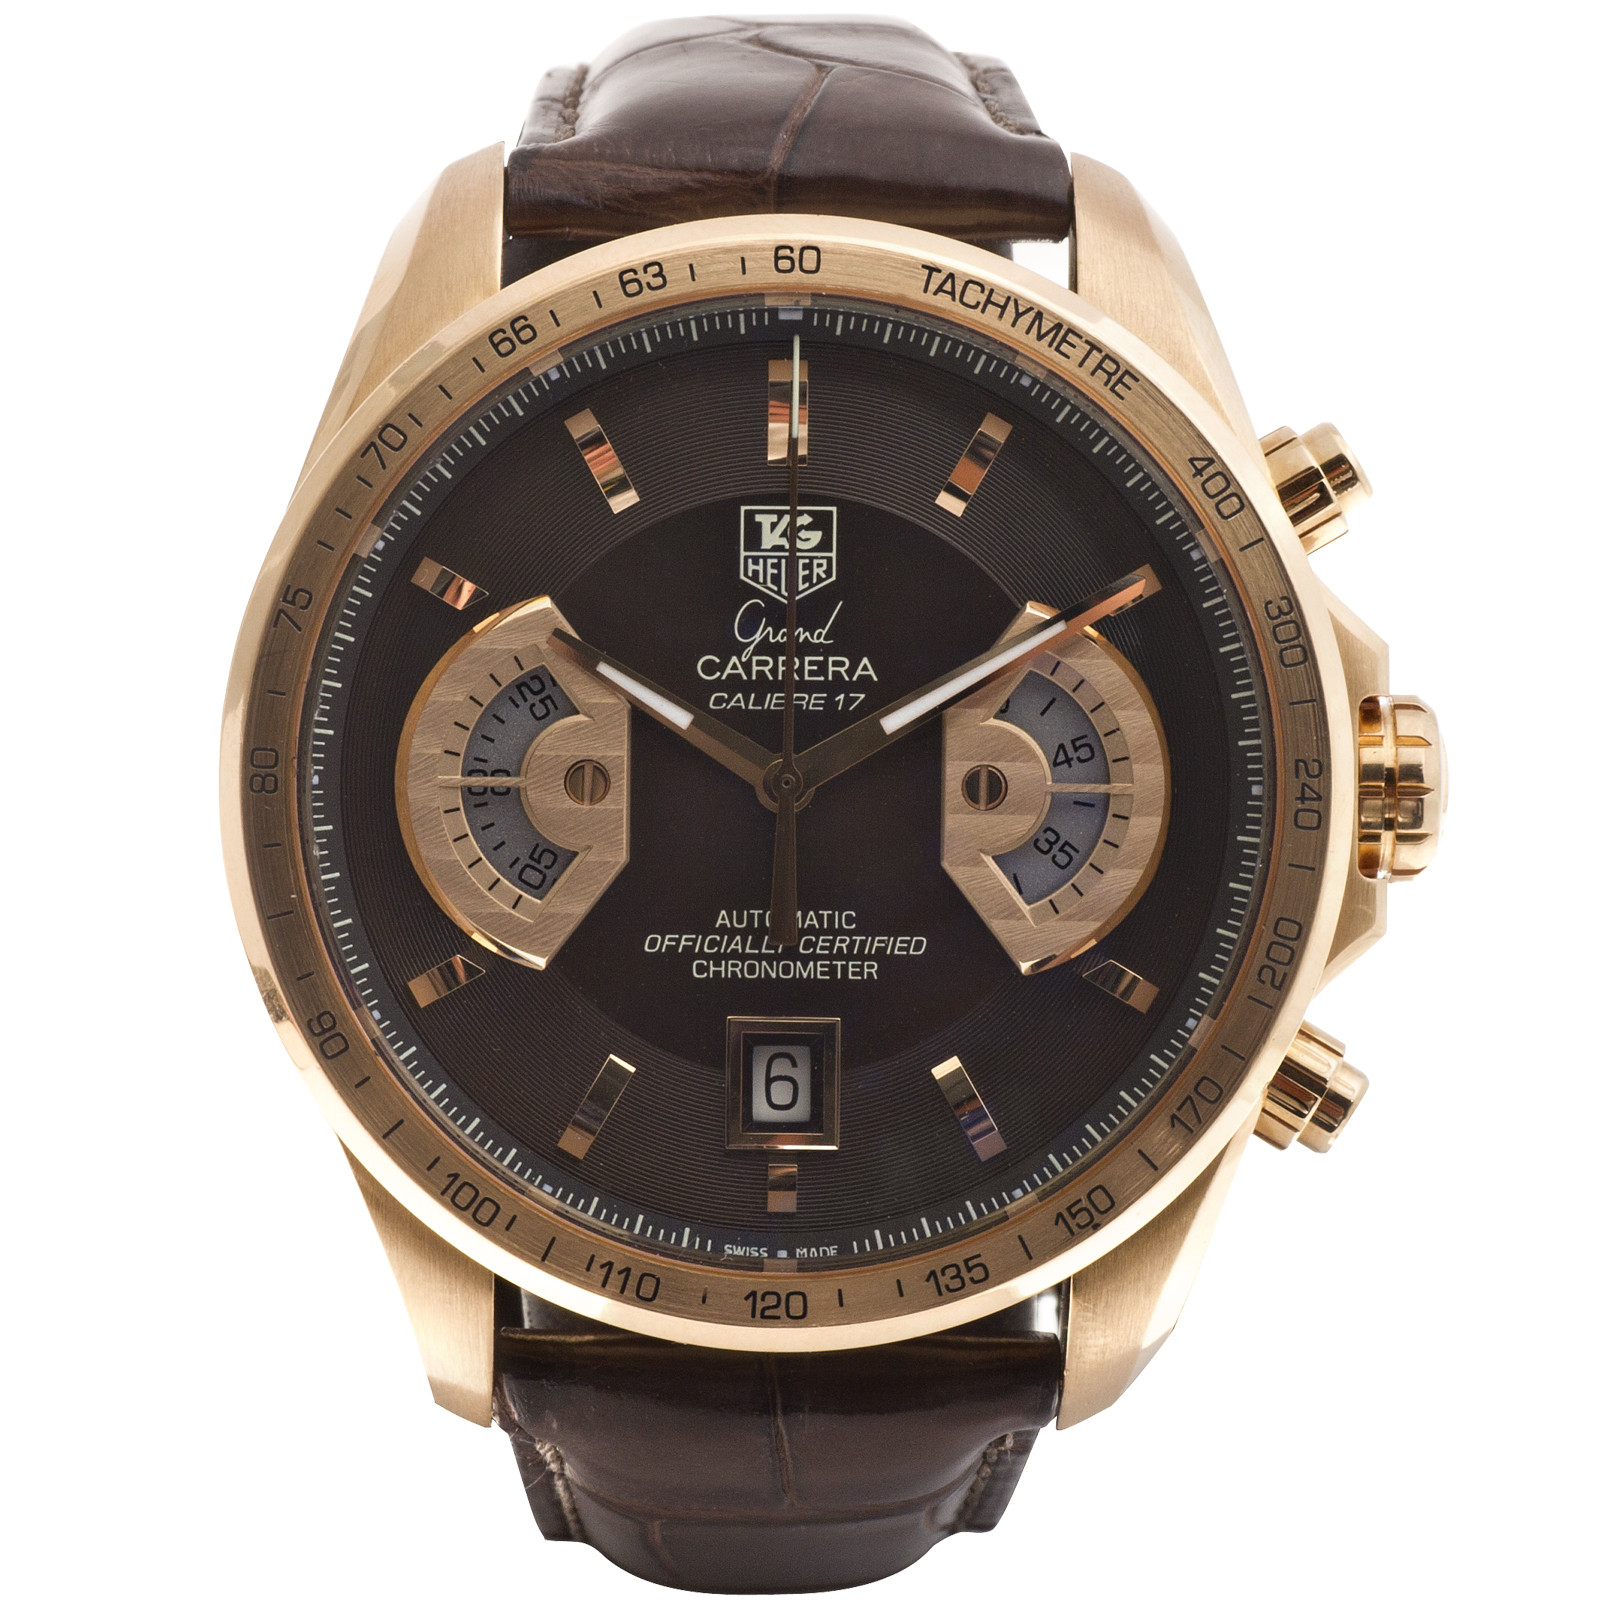 Preowned Tag Heuer Grand Carrera Calibre Watch